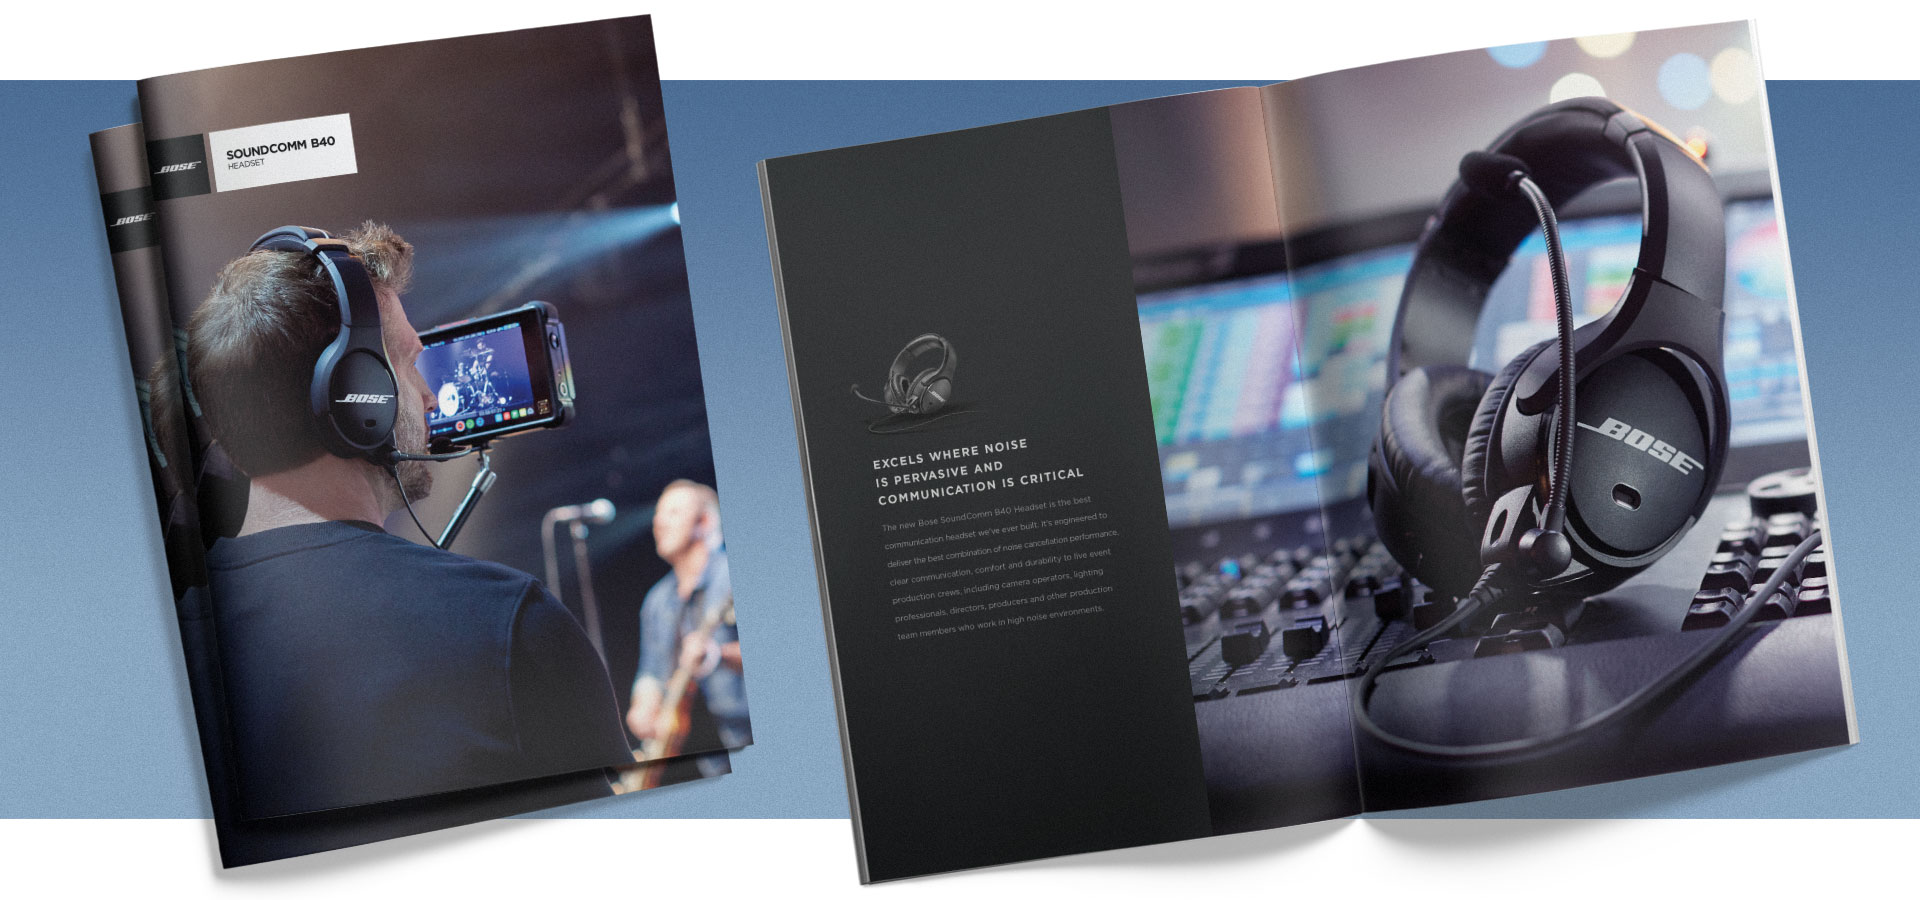 Bose SoundComm B40 product brochures stacked. Third brochure is open, highlighting a spread.